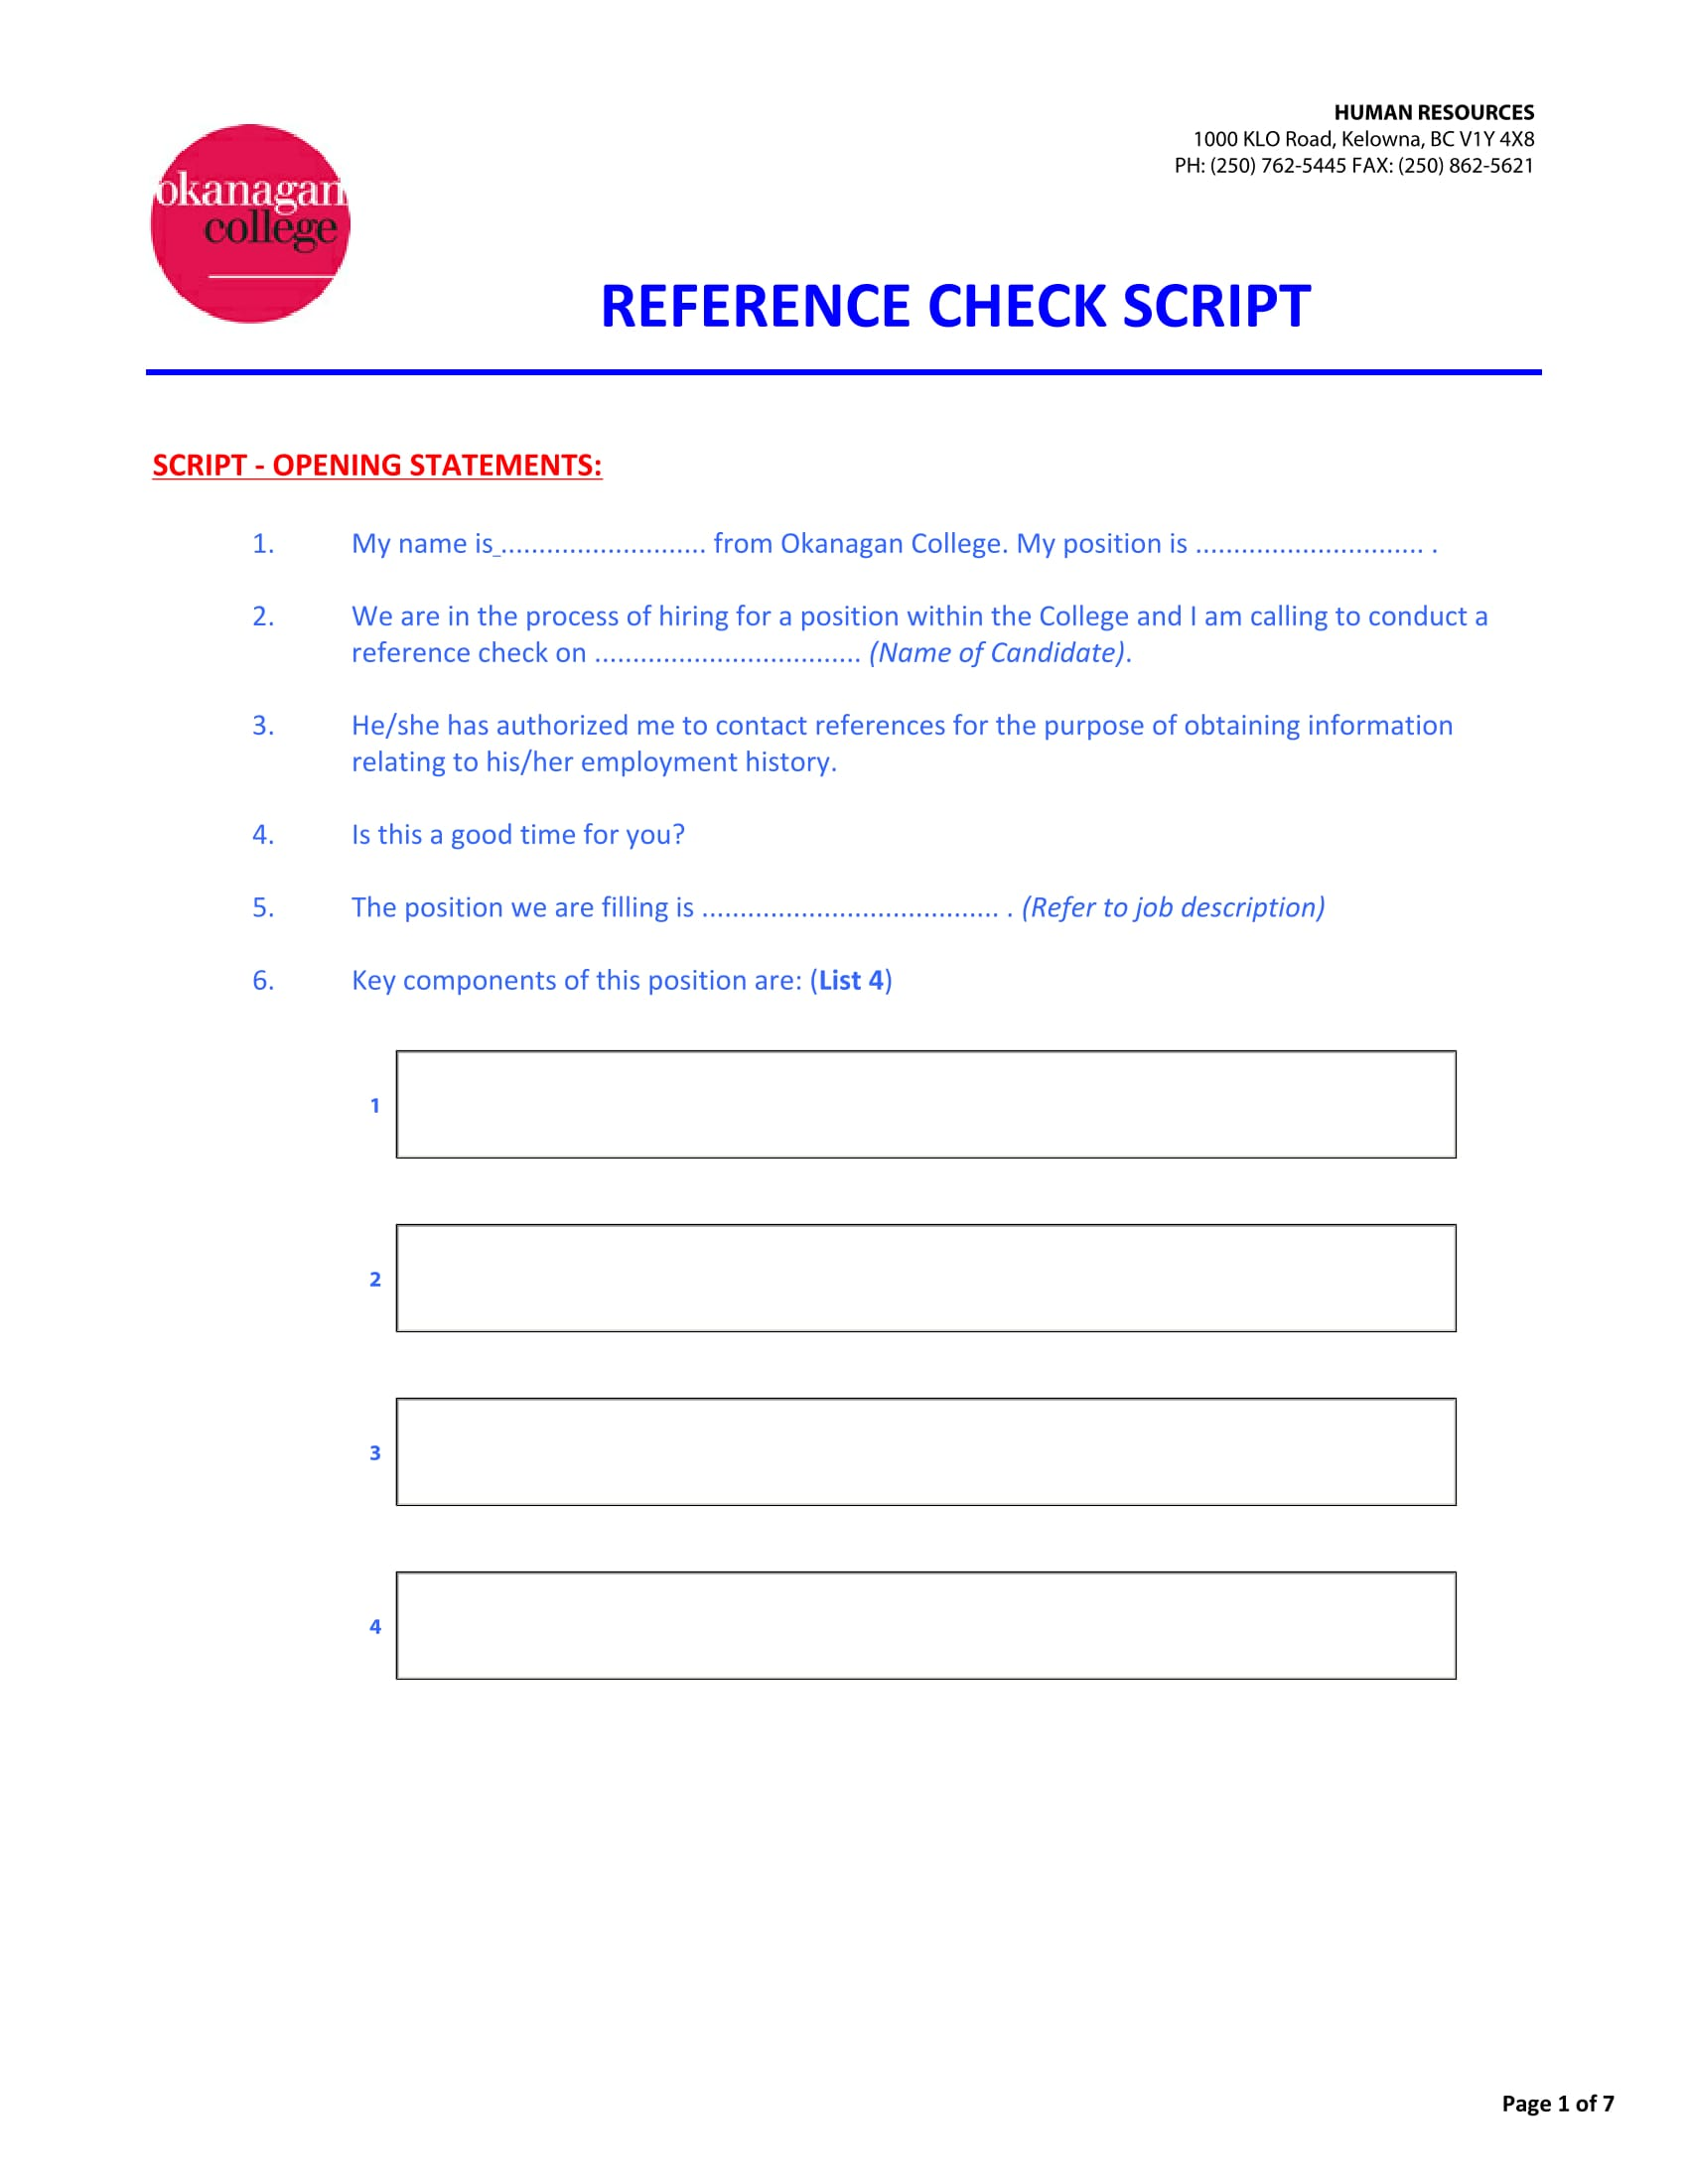 hr reference check script form 1